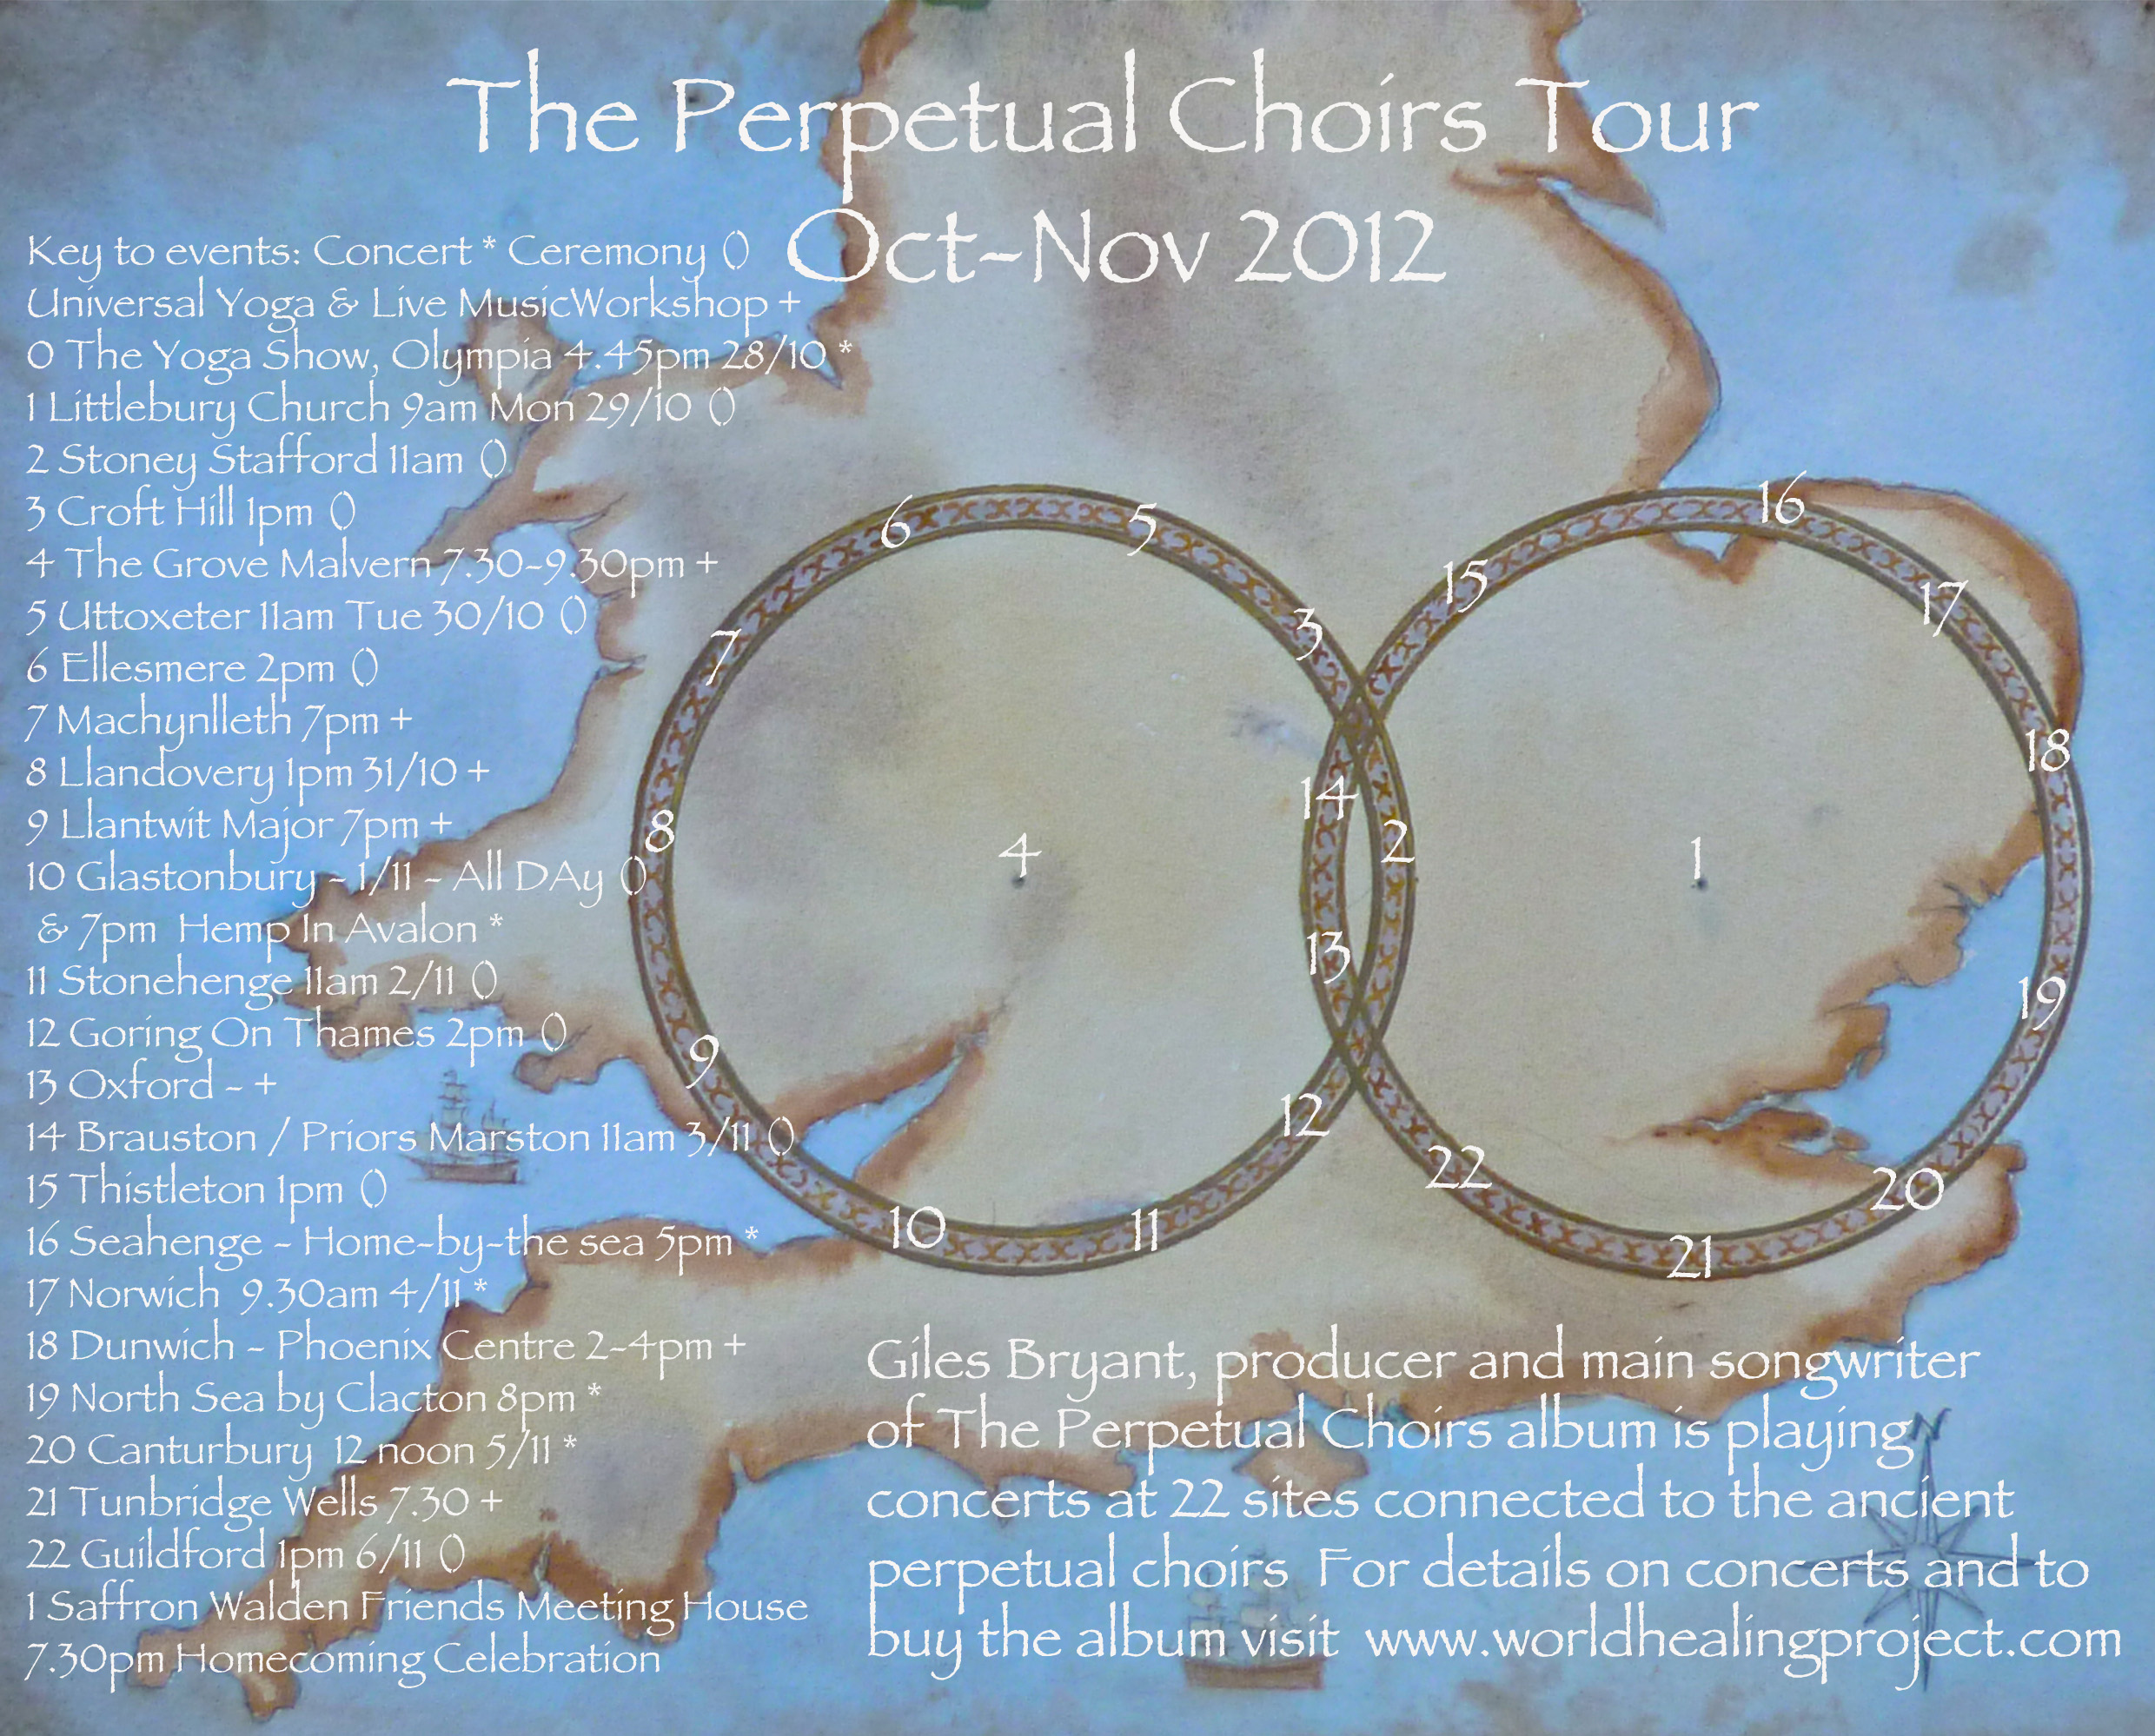 The Perpetual Choirs Tour of Britain